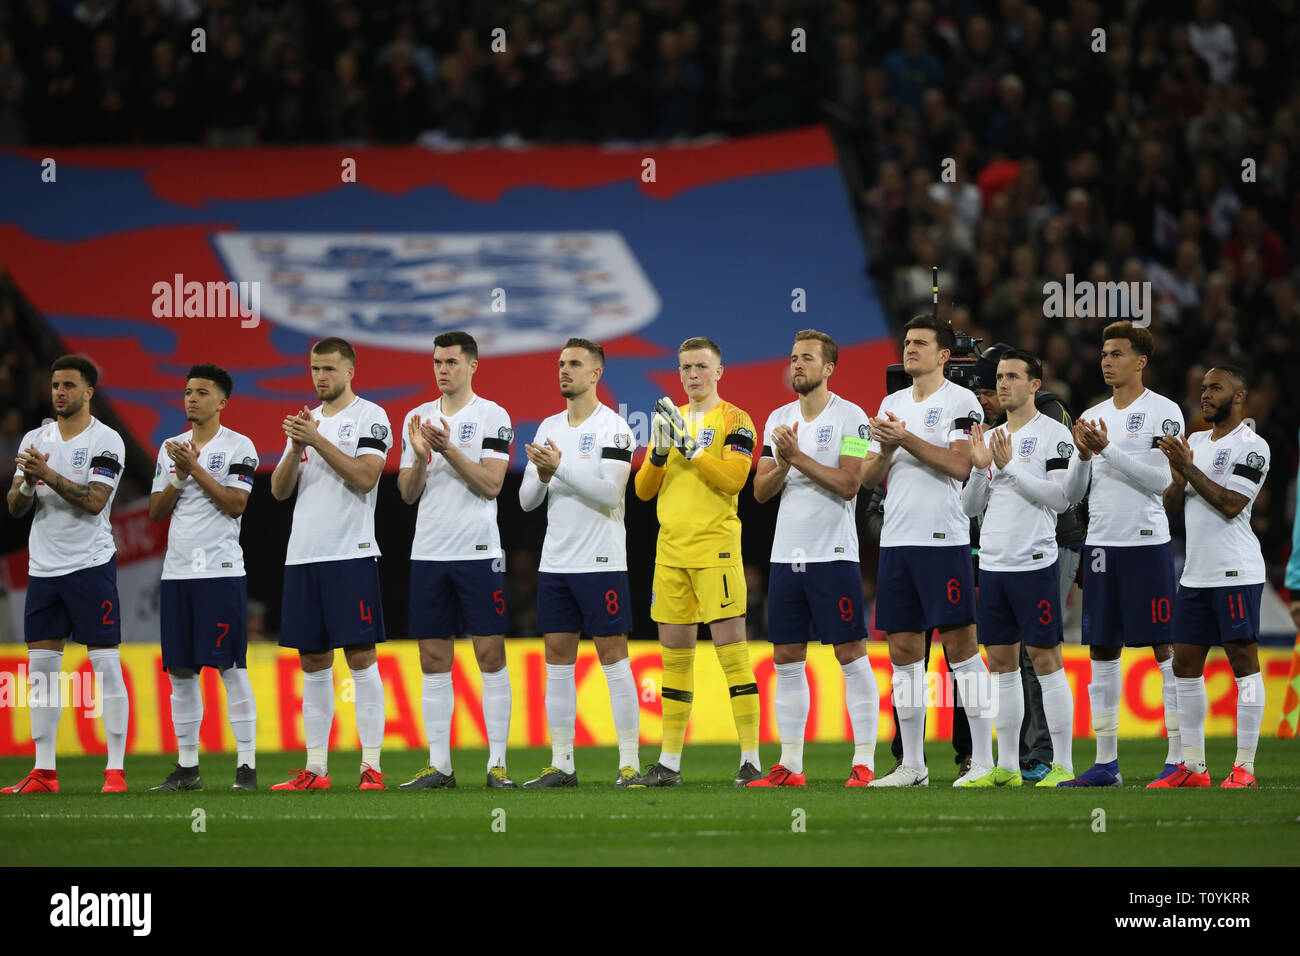 Peterborough, UK. 22nd Mar, 2019. England players have a mark of respect for the late England goalkeeper, Gordon Banks. England v Czech Republic EUFA Euro 2020 Qualifier, at Wembley Stadium, UK on March 22, 2019. **Editorial use only, license required for commercial use. No use in betting, games or a single club/league/player publications** Credit: Paul Marriott/Alamy Live News - Stock Image